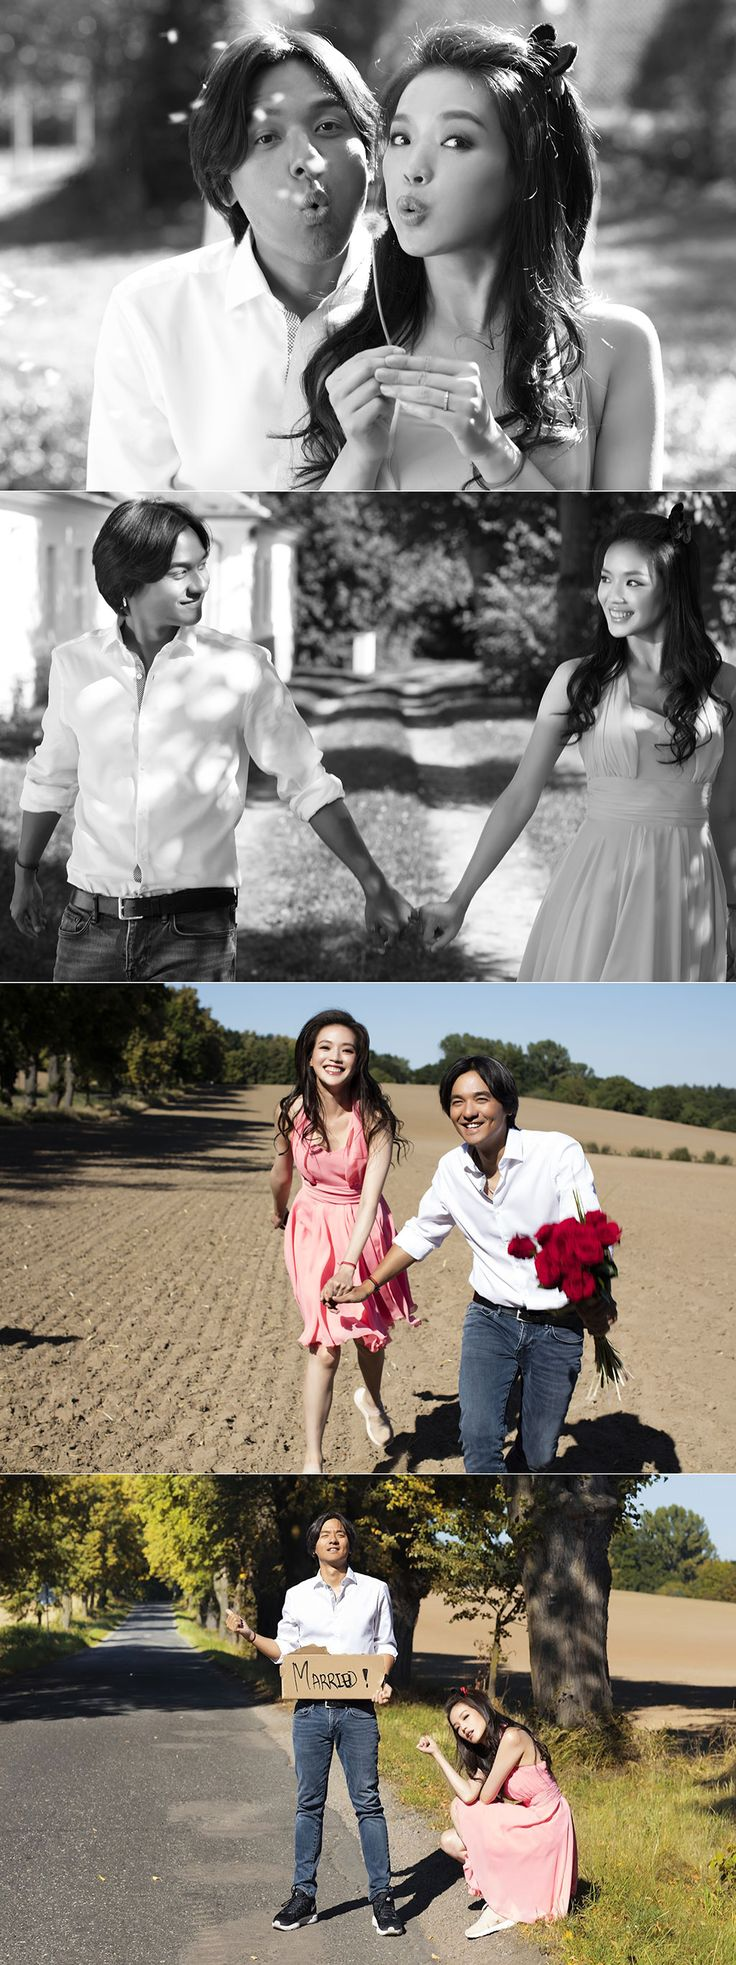 Taiwanese celebrity Shu Qi pre-wedding photoshoot in Prague!